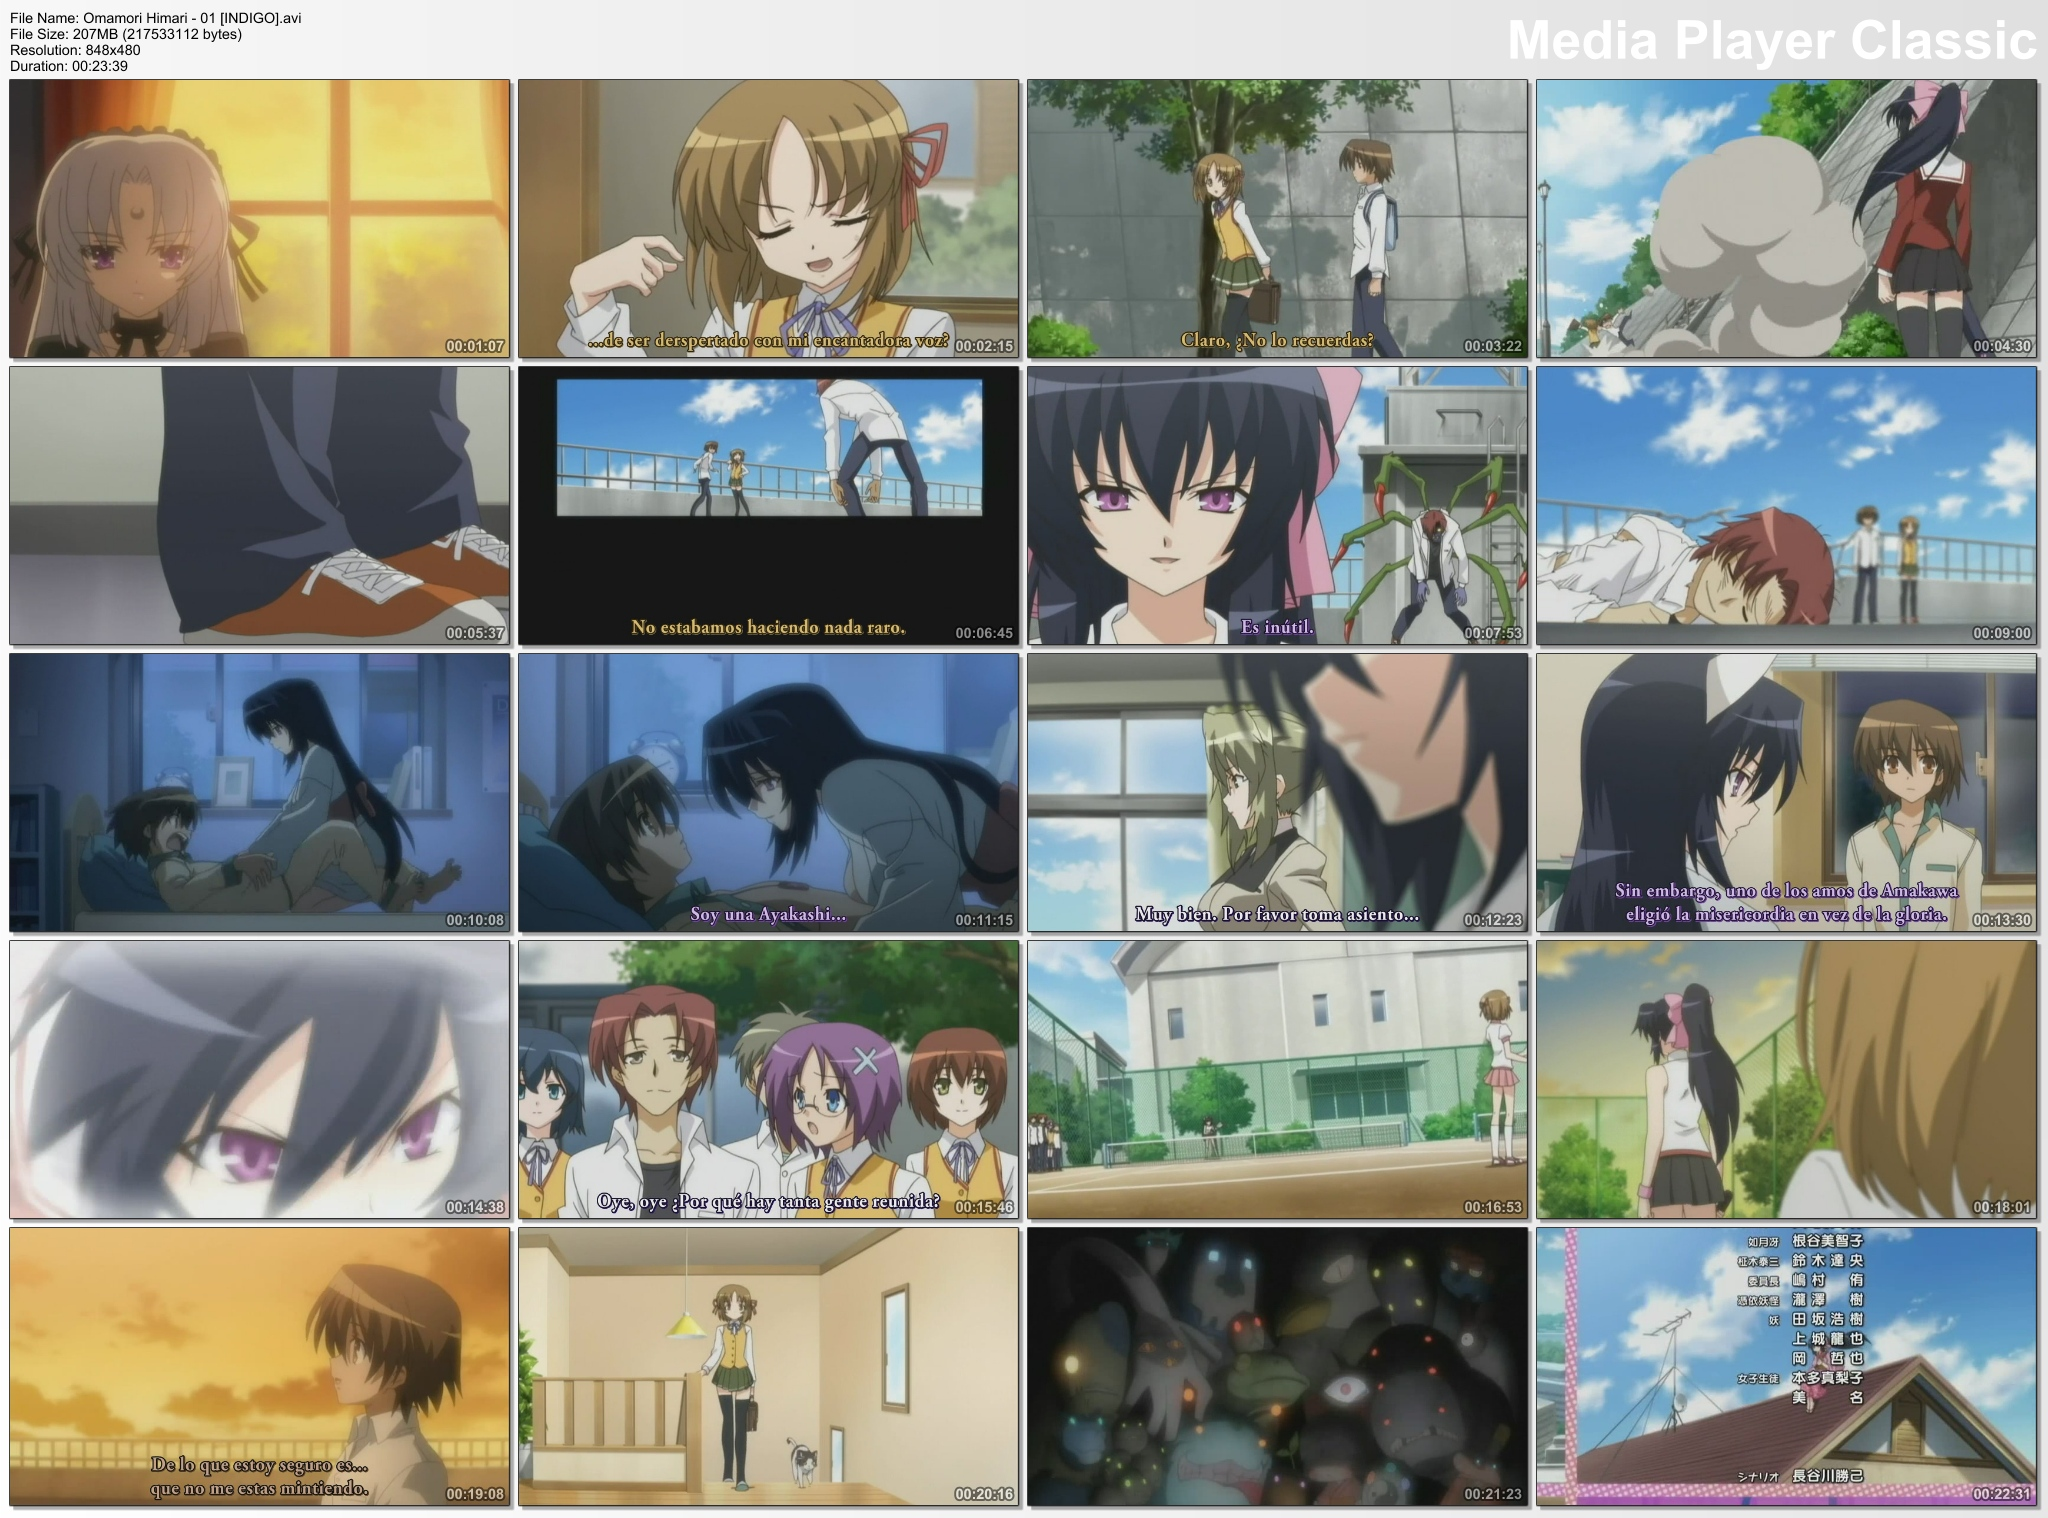 omamori himari   ...igo .avi 17cc80c Wednesday 15th' we must go out tonight. The girls from Jacobs have called, ...